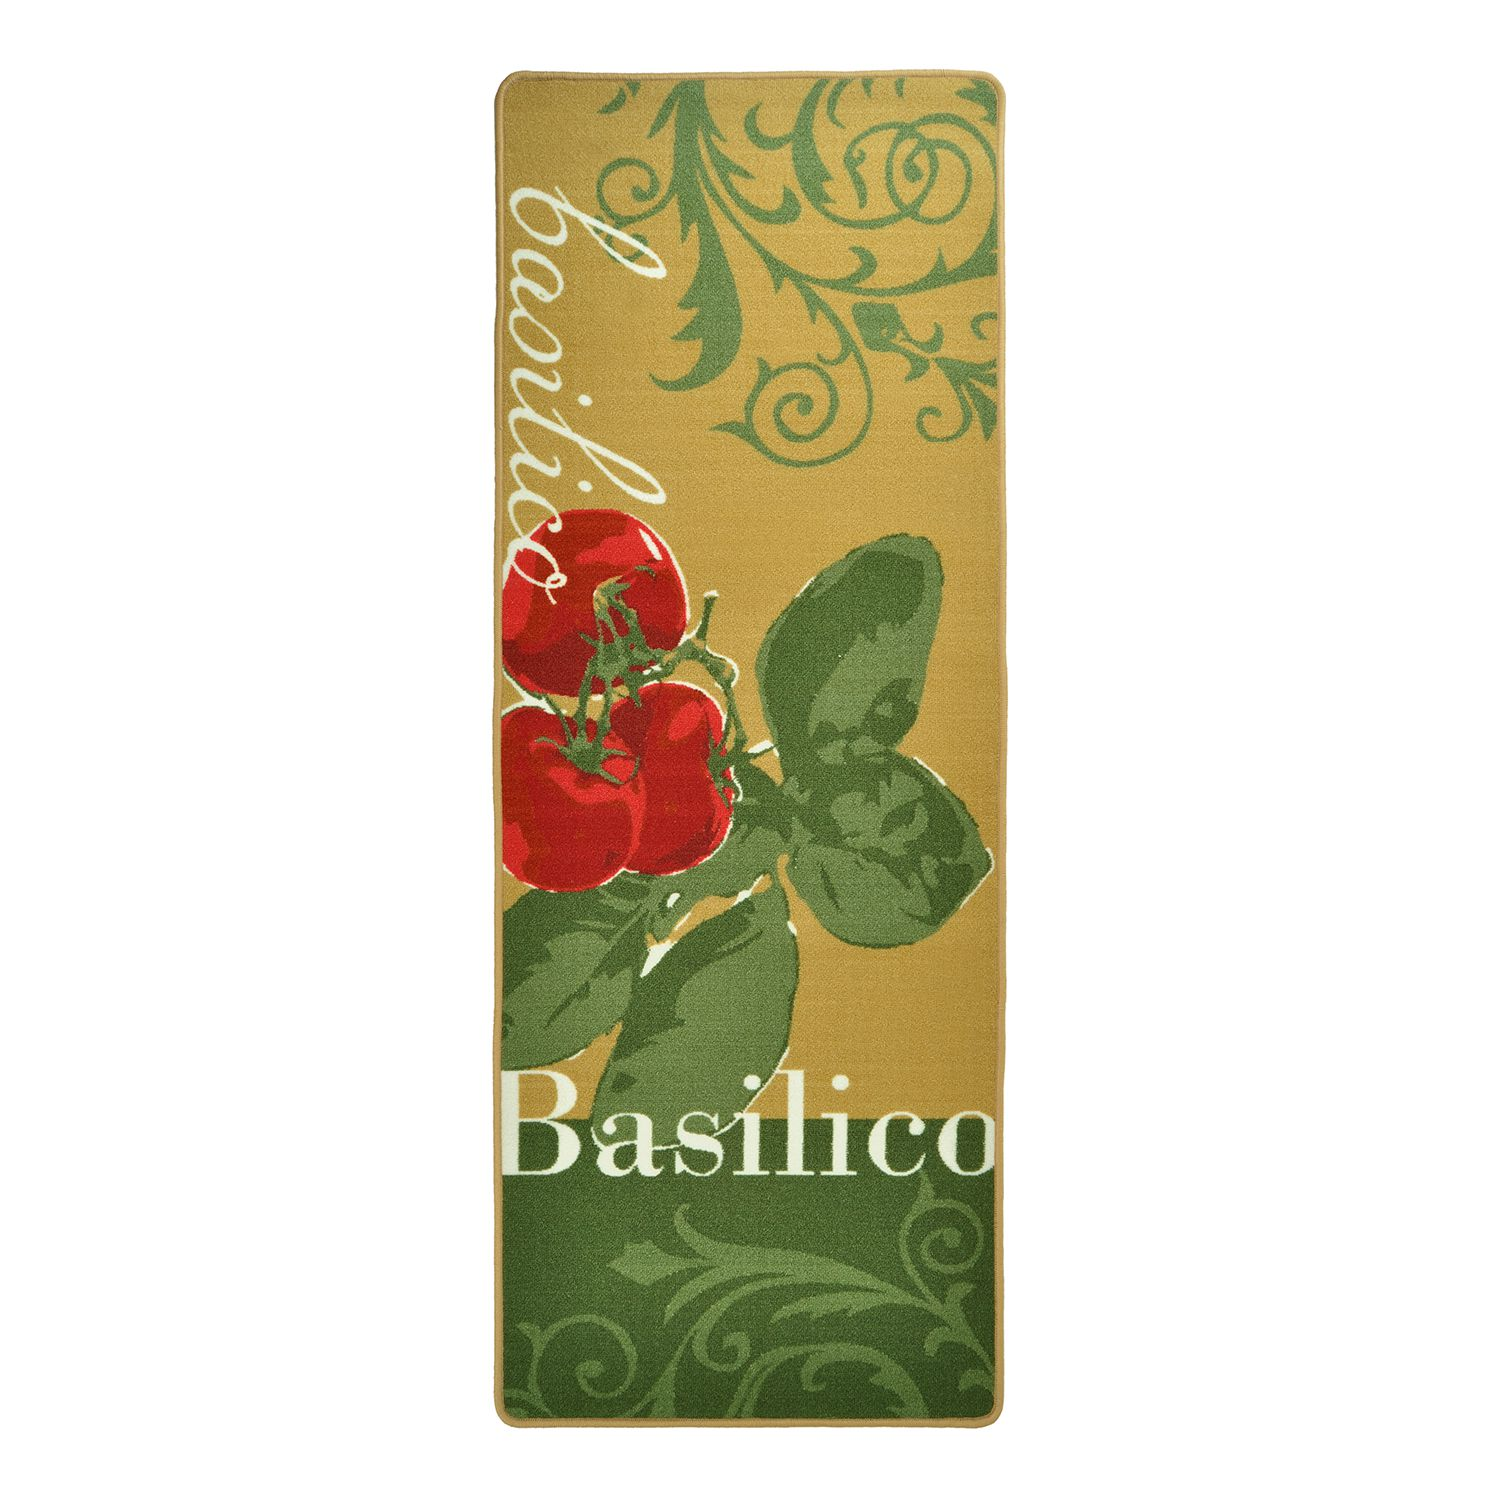 Smal tapijt Basilico, Hanse Home Collection